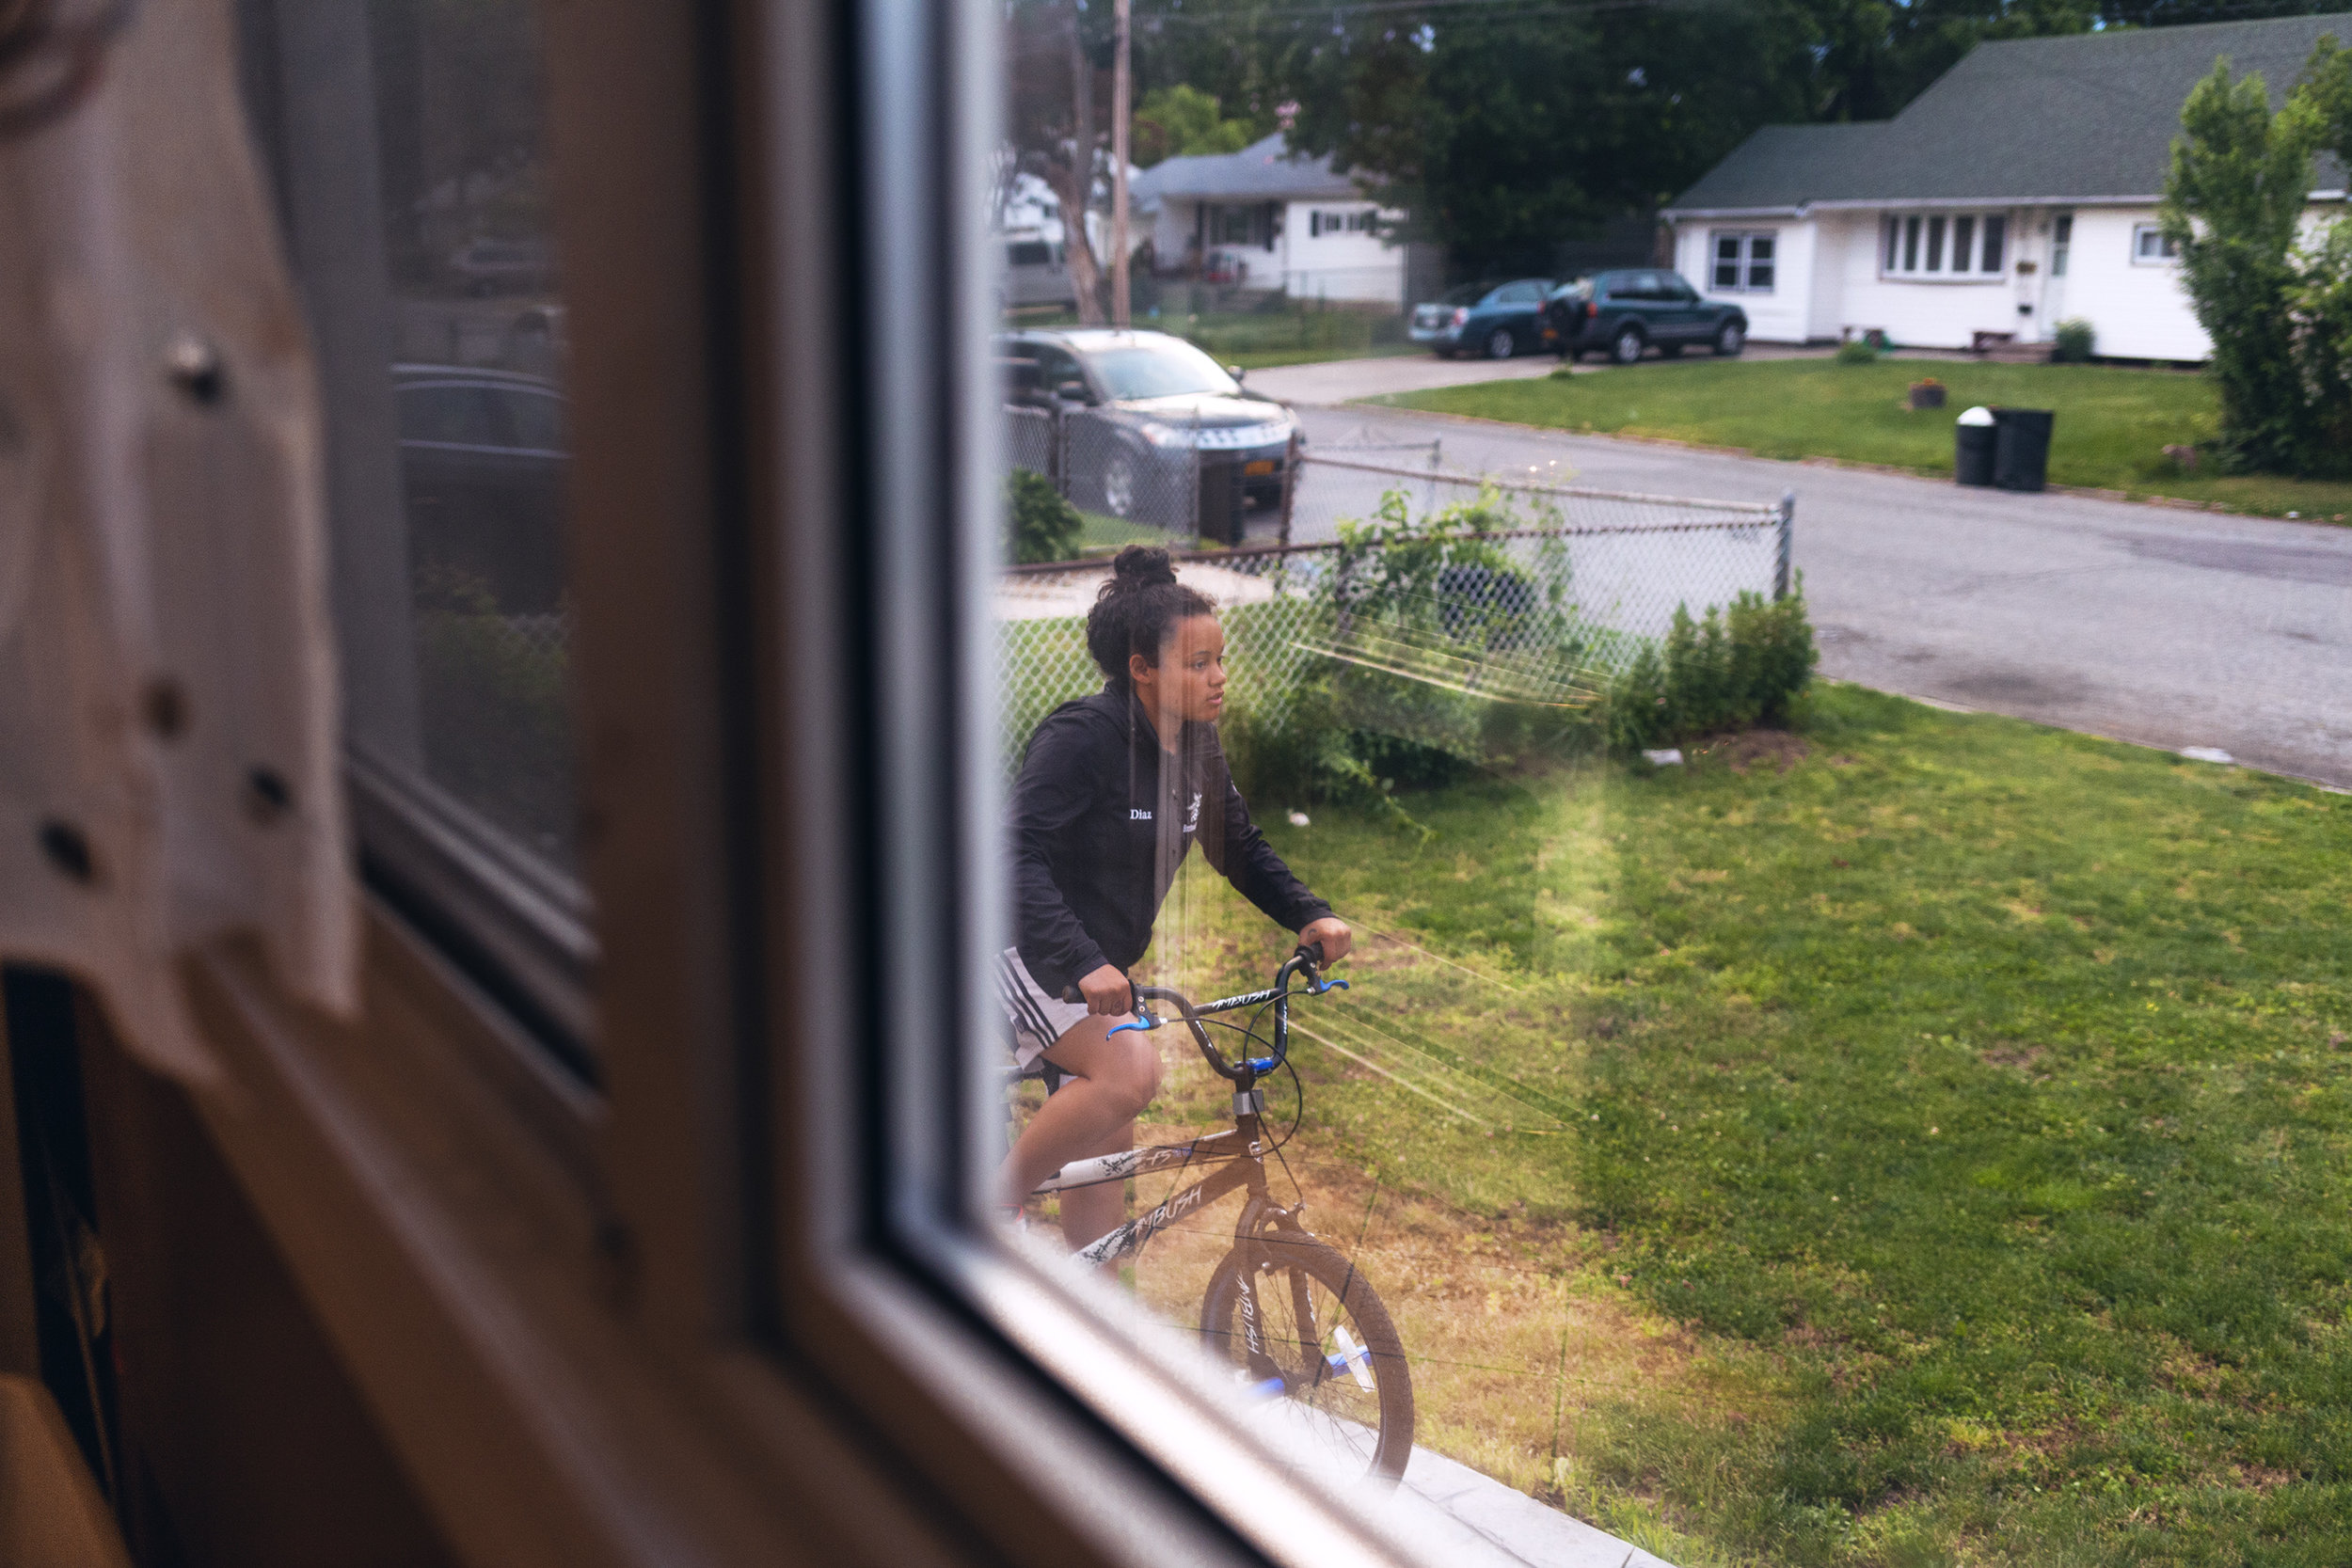 Madeline Diaz rides a bike on her porch in Brentwood.